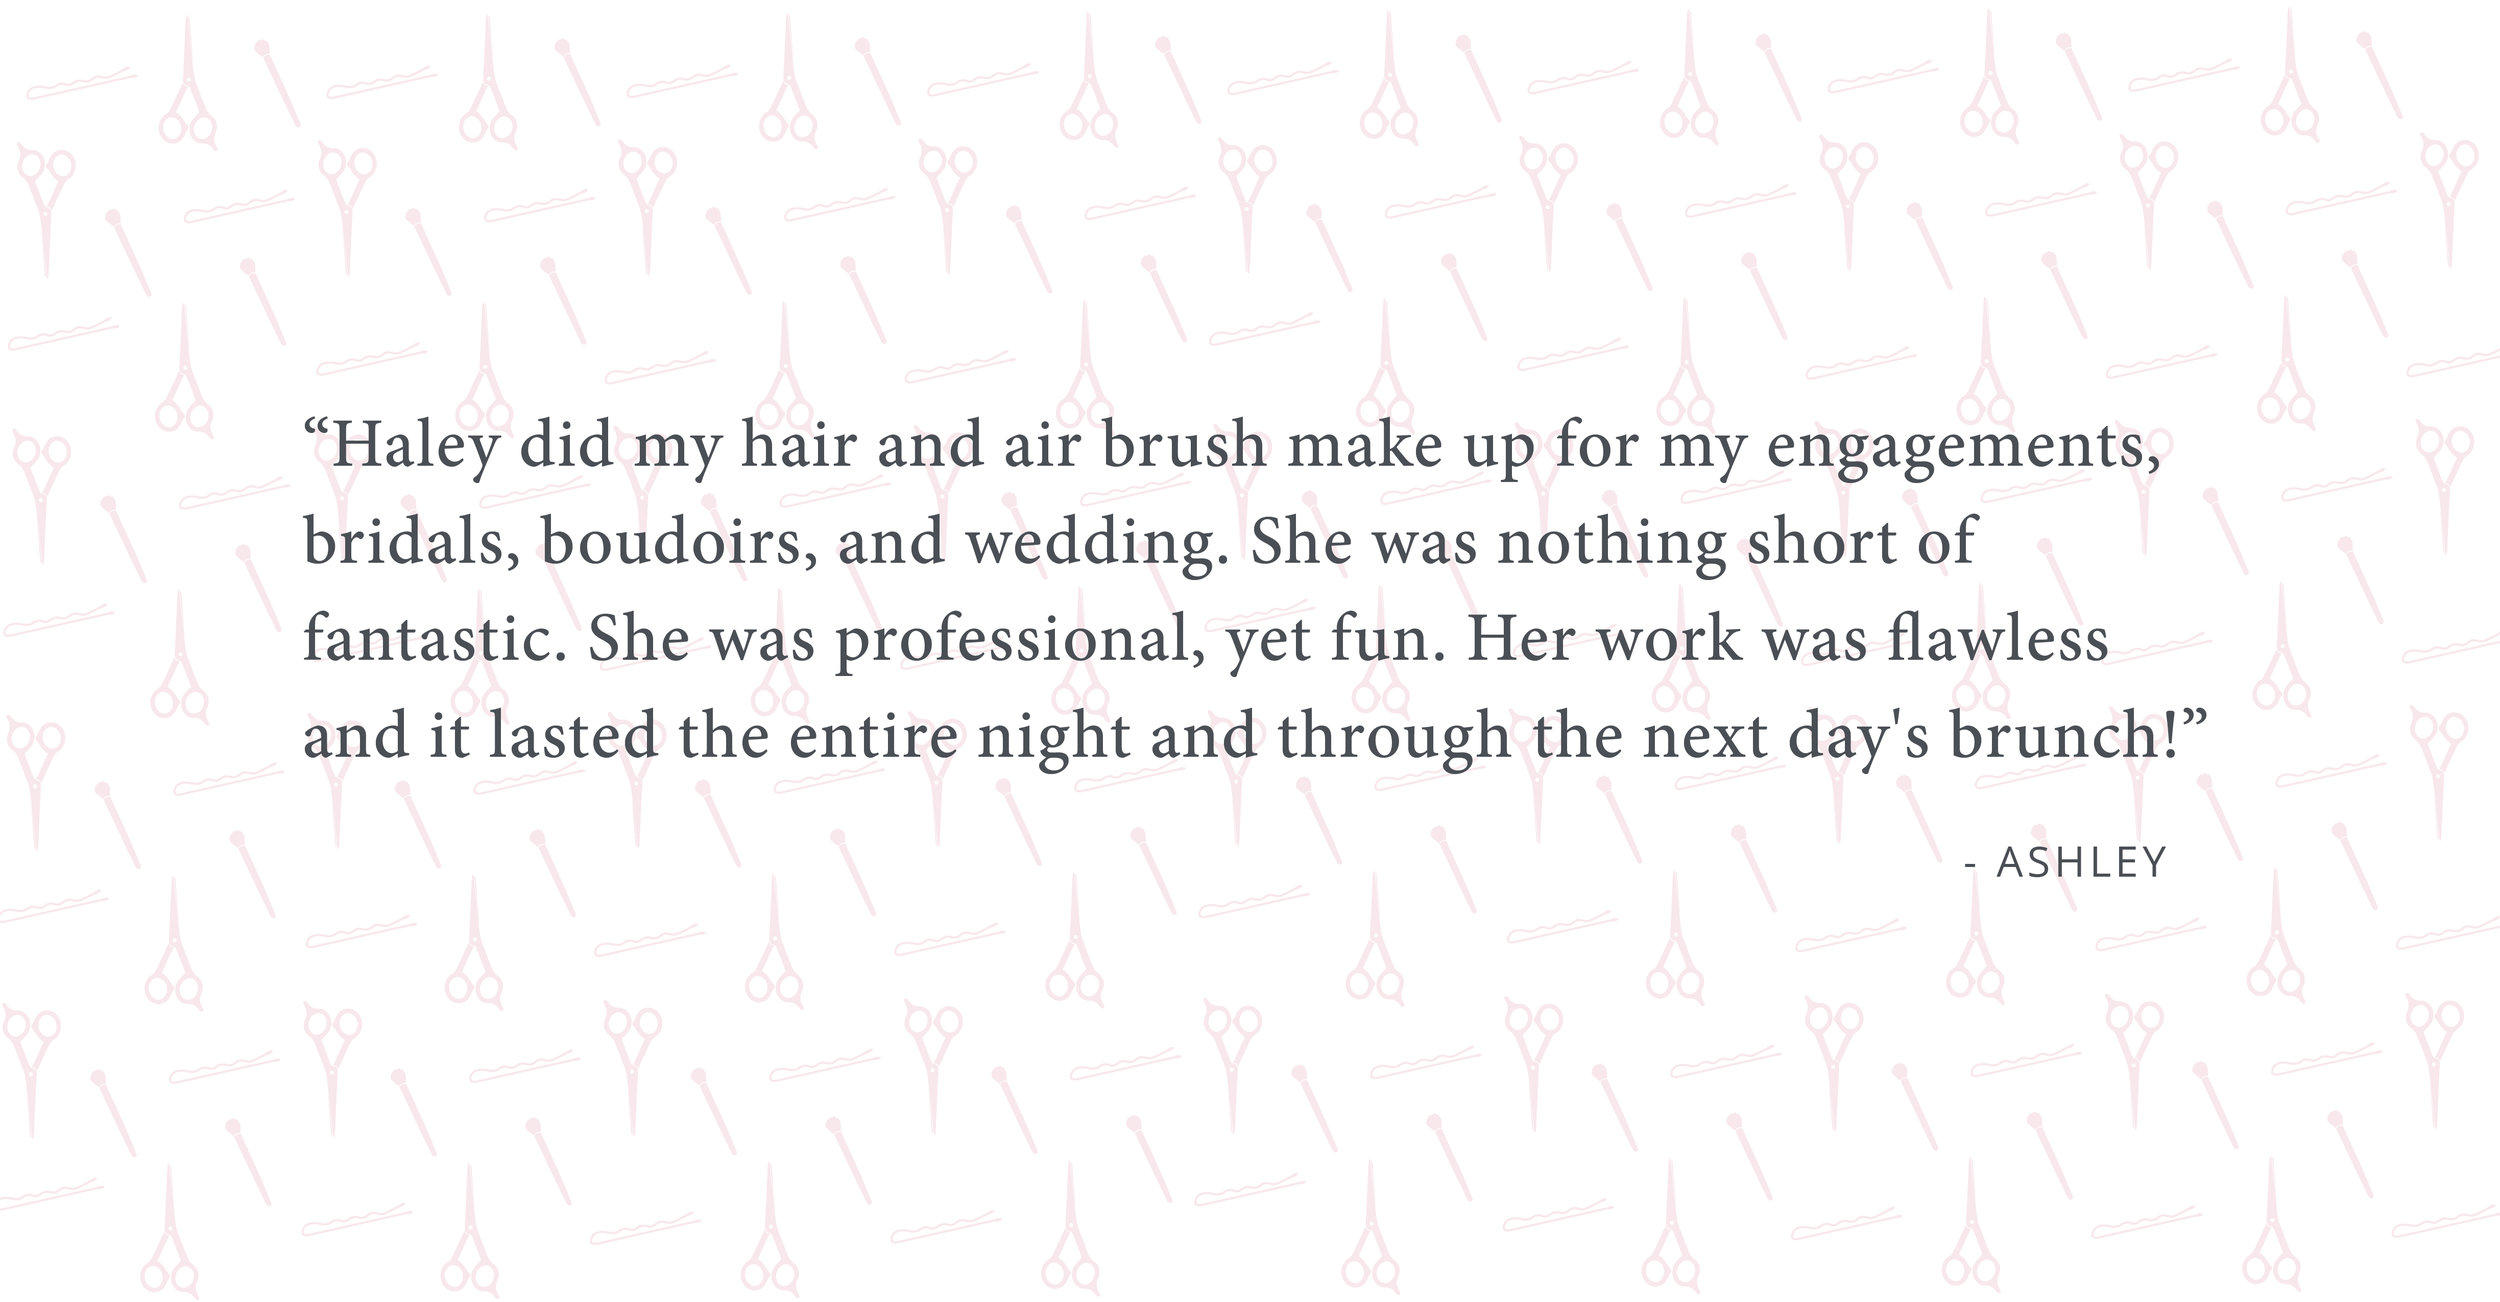 HaleySnodderly-Hairstylist-Makeup-artist-Testimonial-Graphic-01.jpg